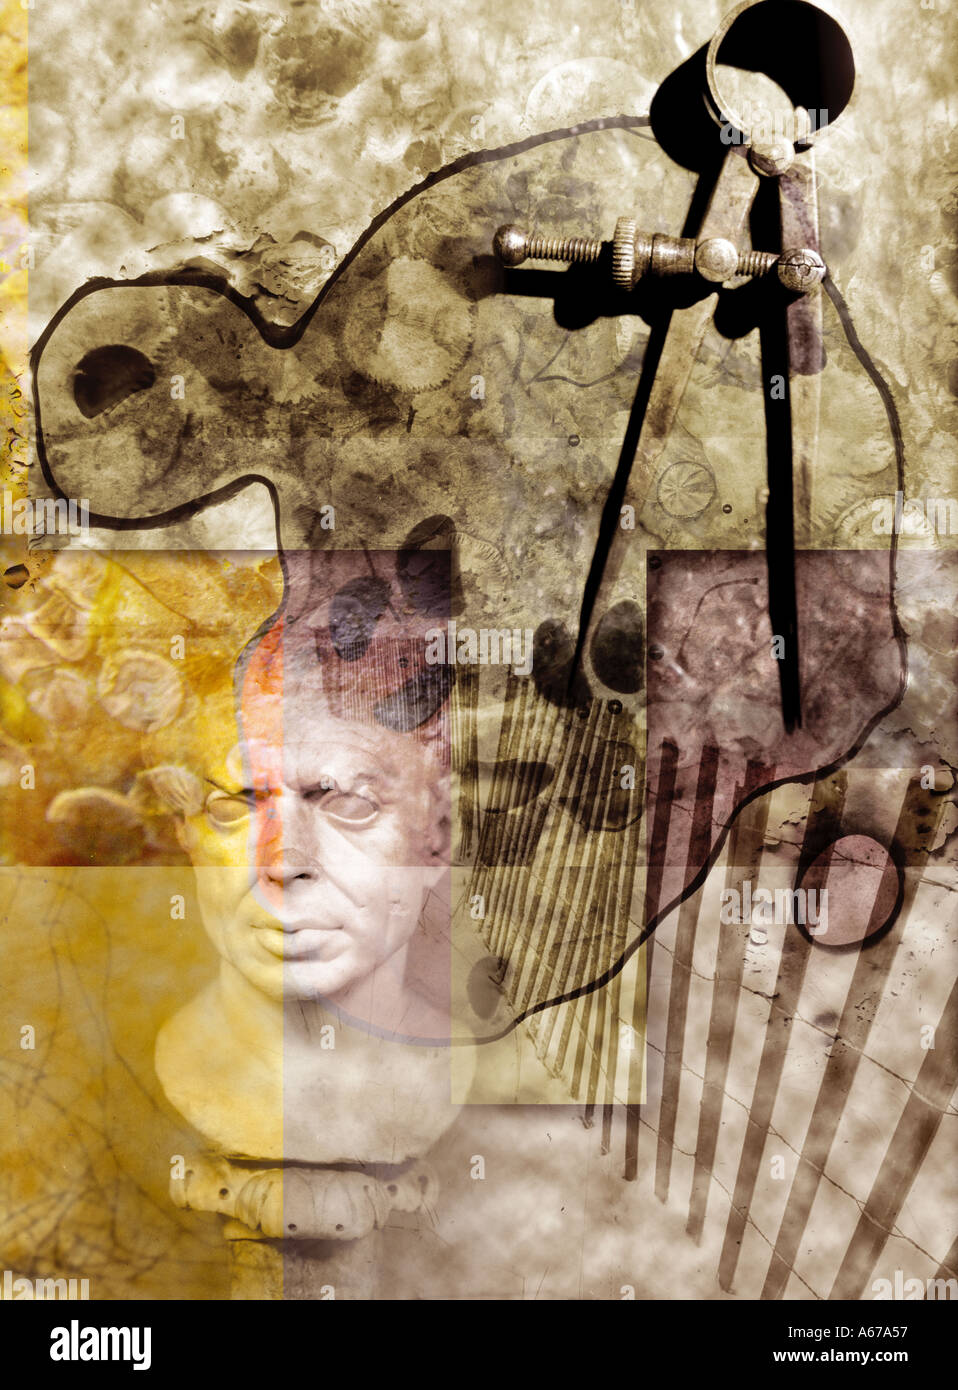 Drafting tool and Roman bust collage - Stock Image